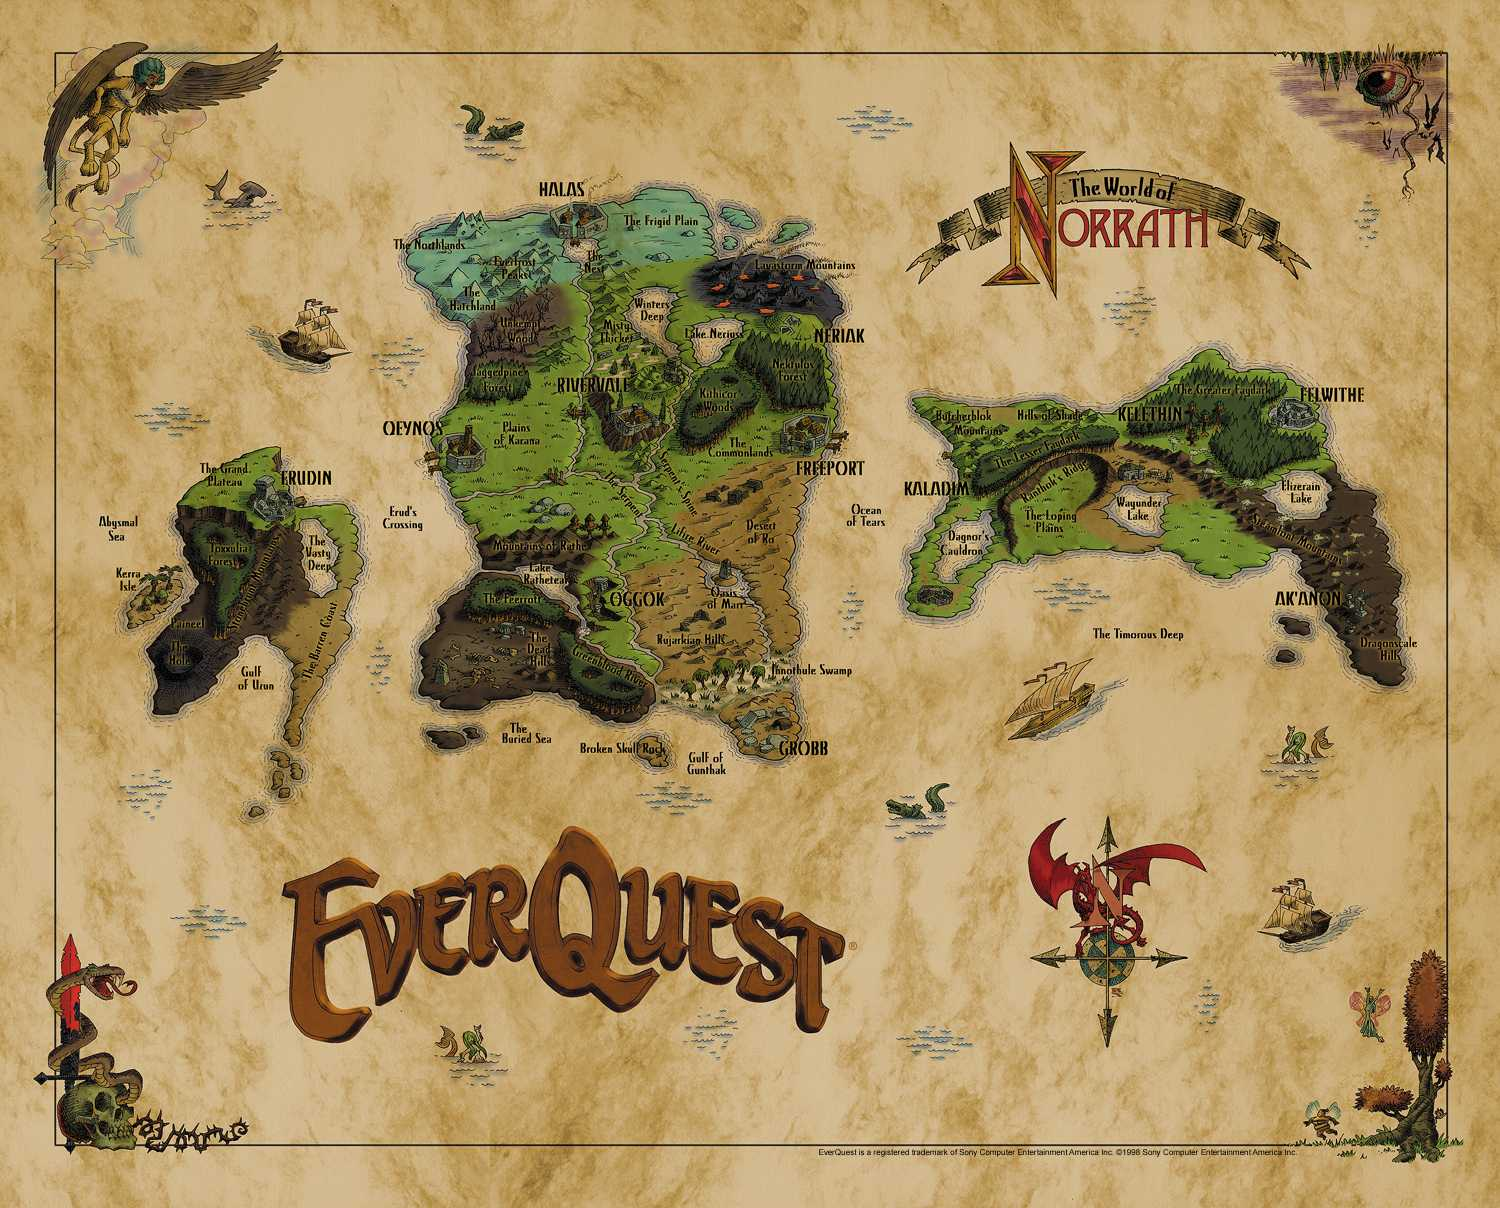 Everquest all large